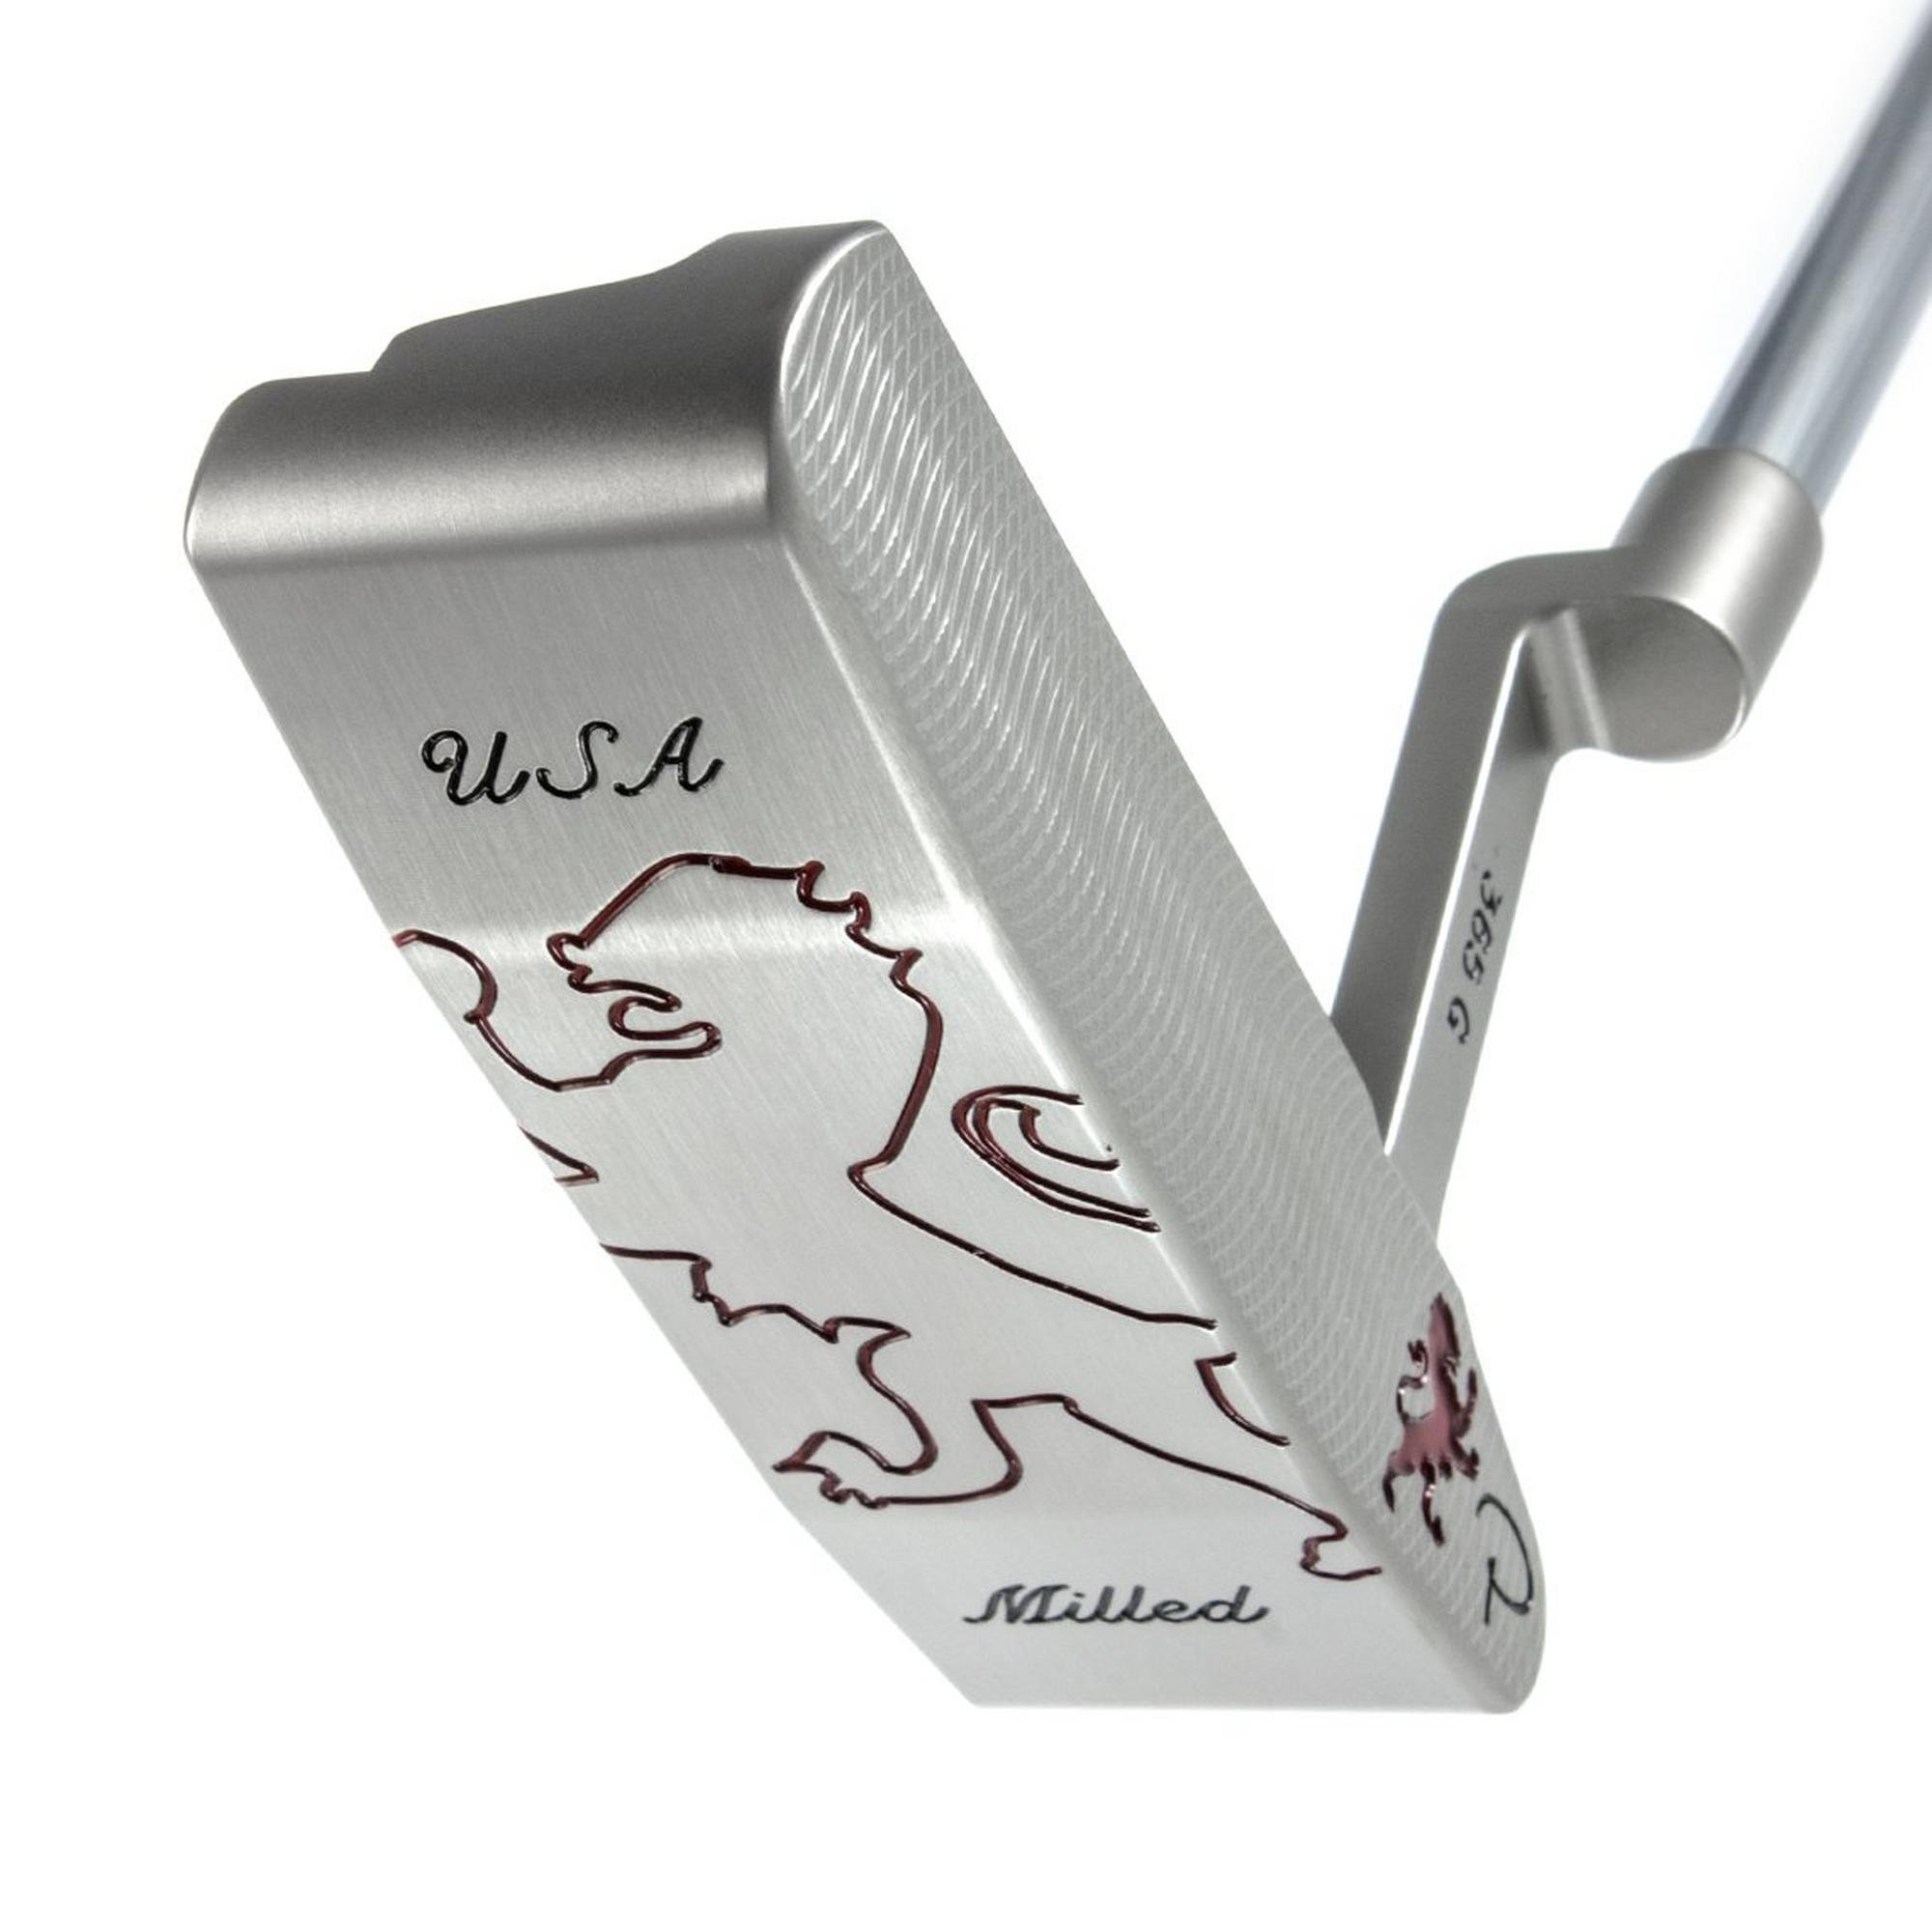 Cottonwood II 375G - 303 Series Putter